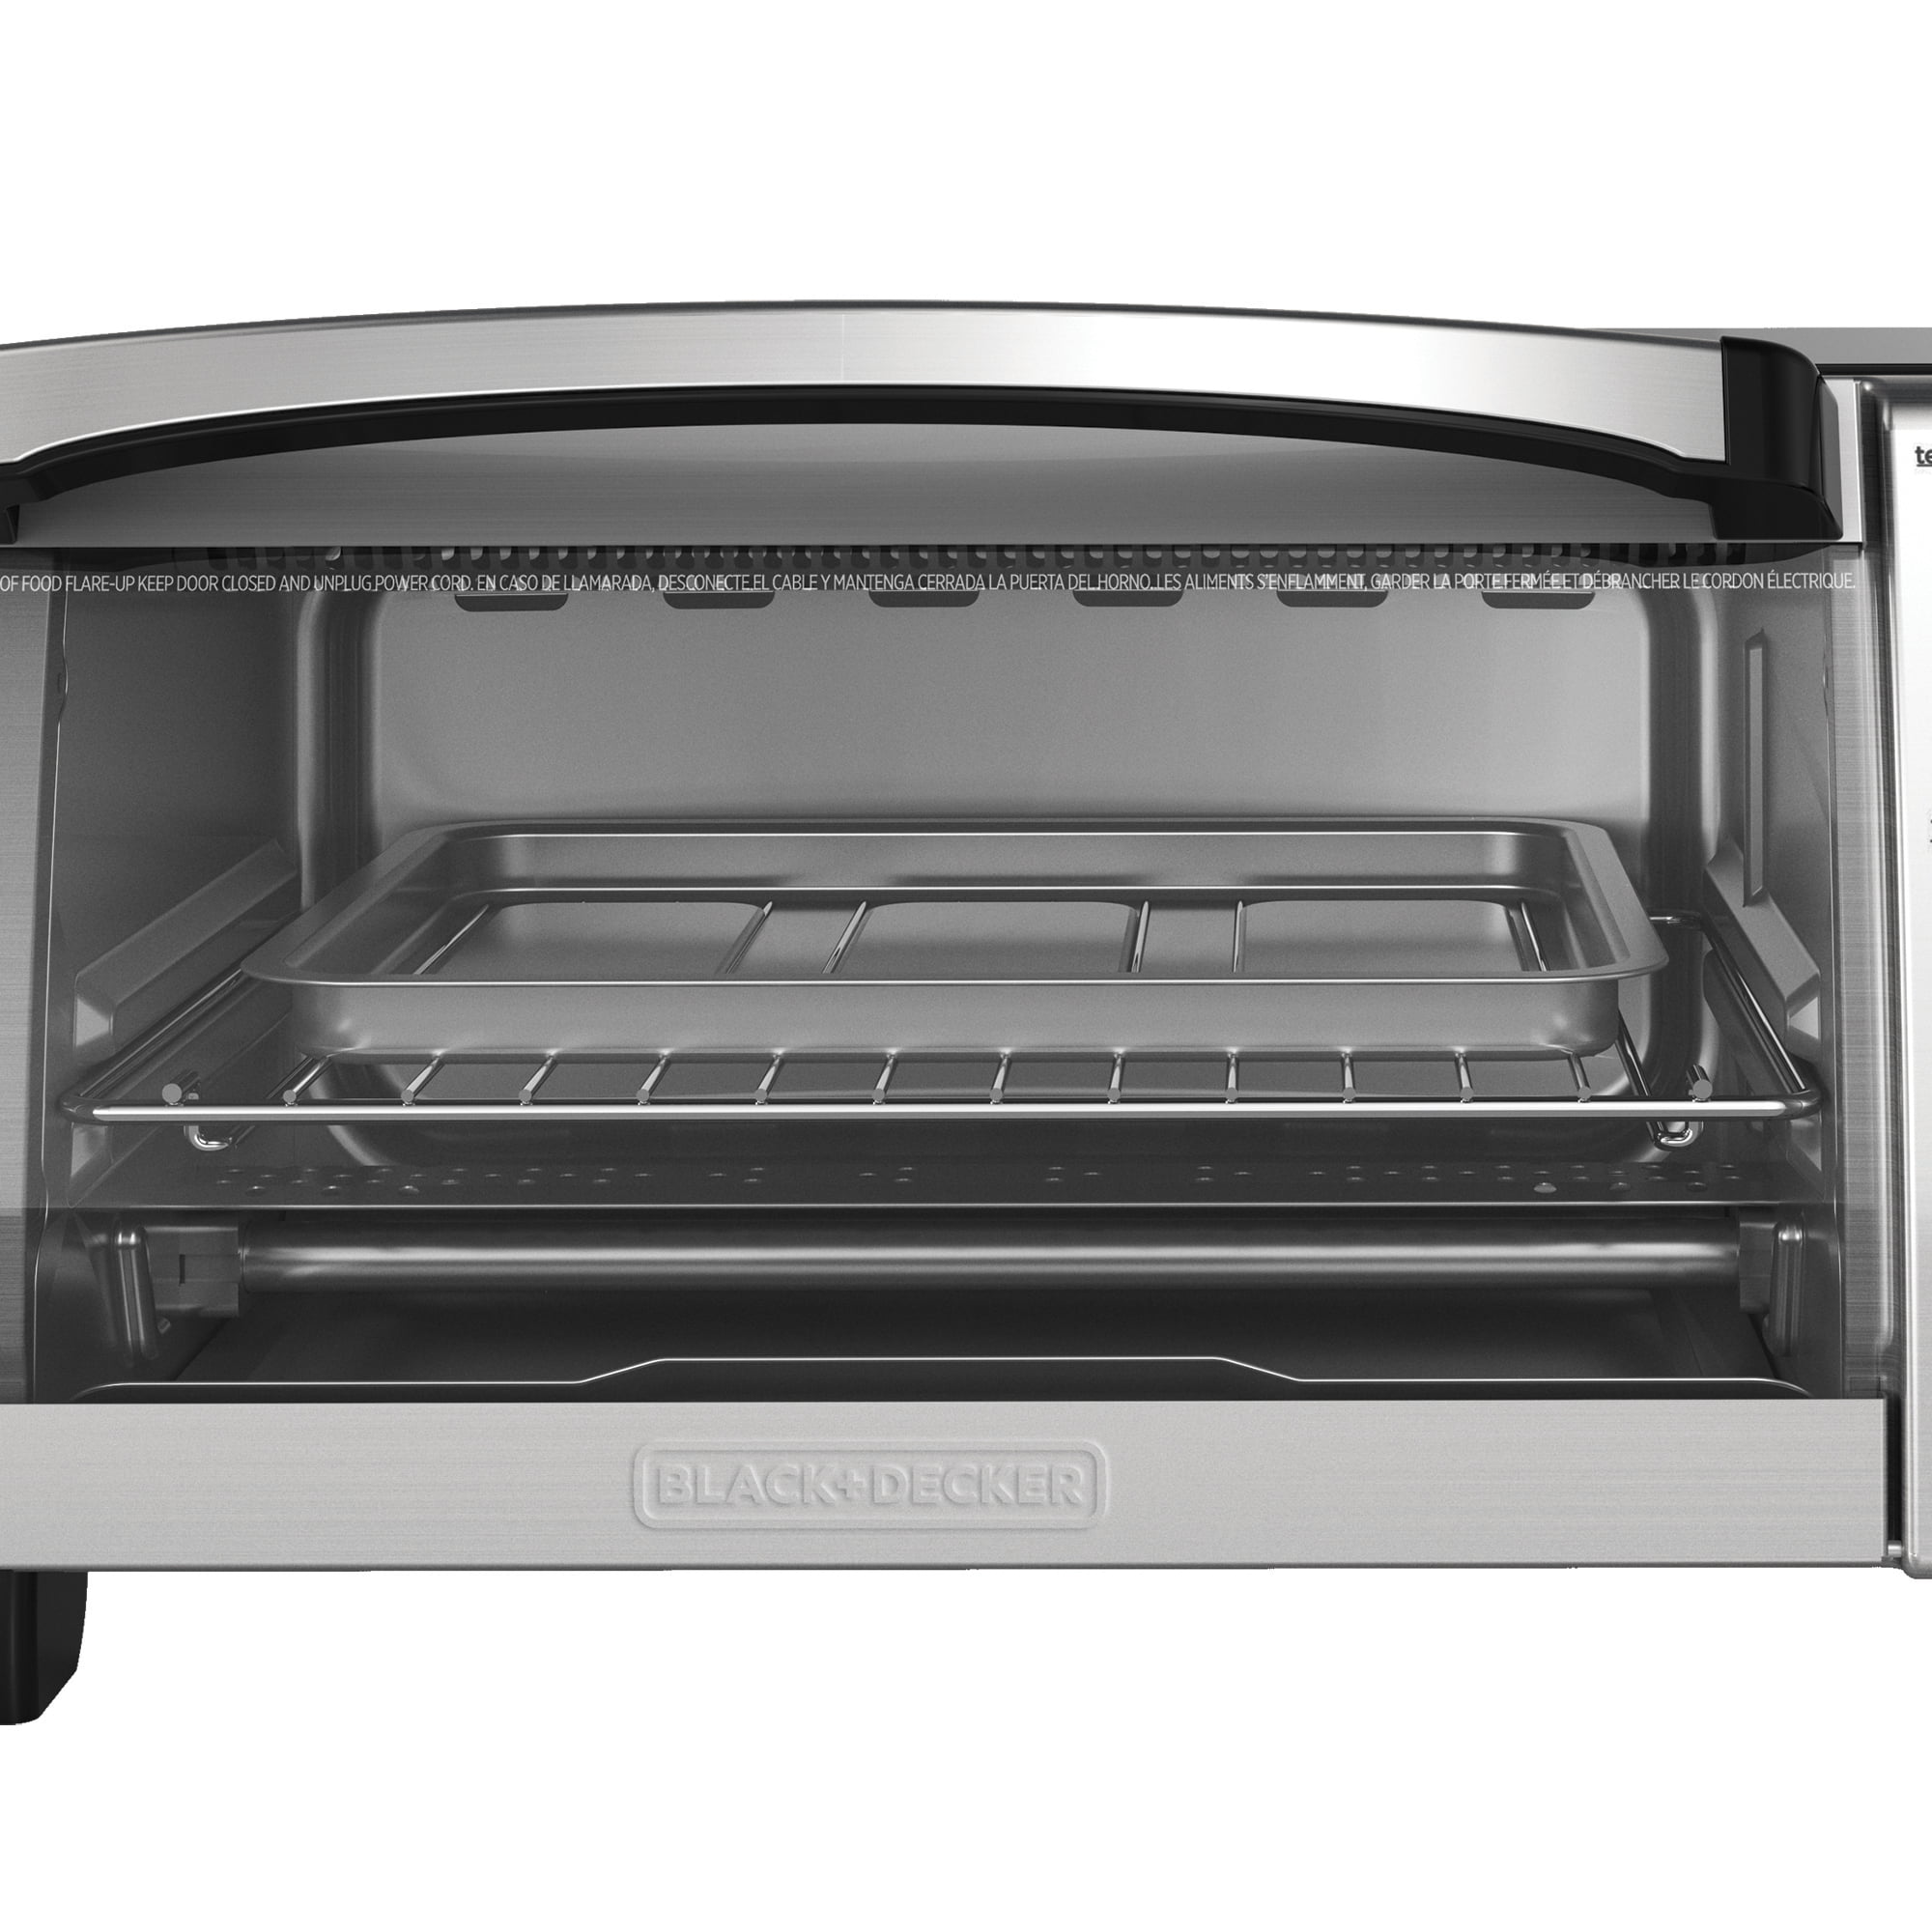 knob decker ovens down shipped oven amazon blackdecker gray only from black toaster